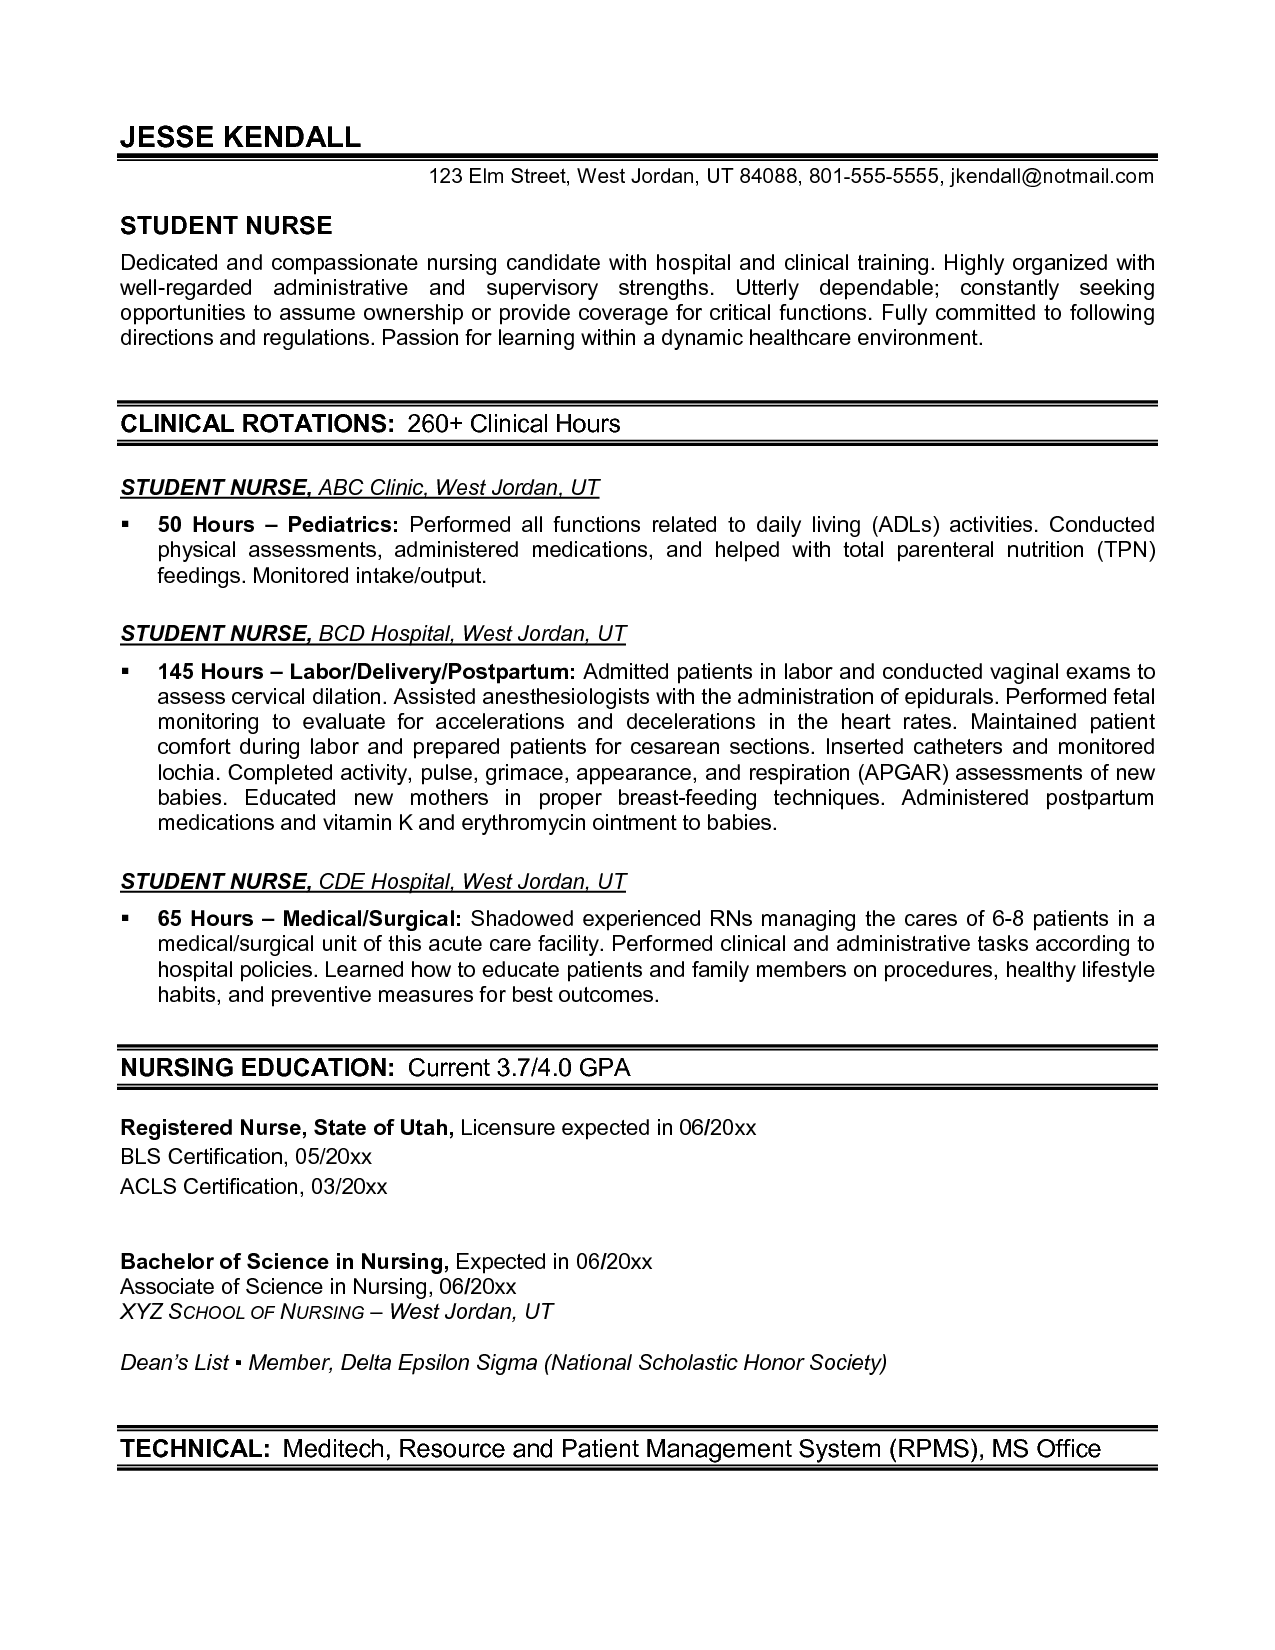 Nursing Resume Template Enchanting Resume Template Nursing  Nursing  Pinterest  Nursing Resume